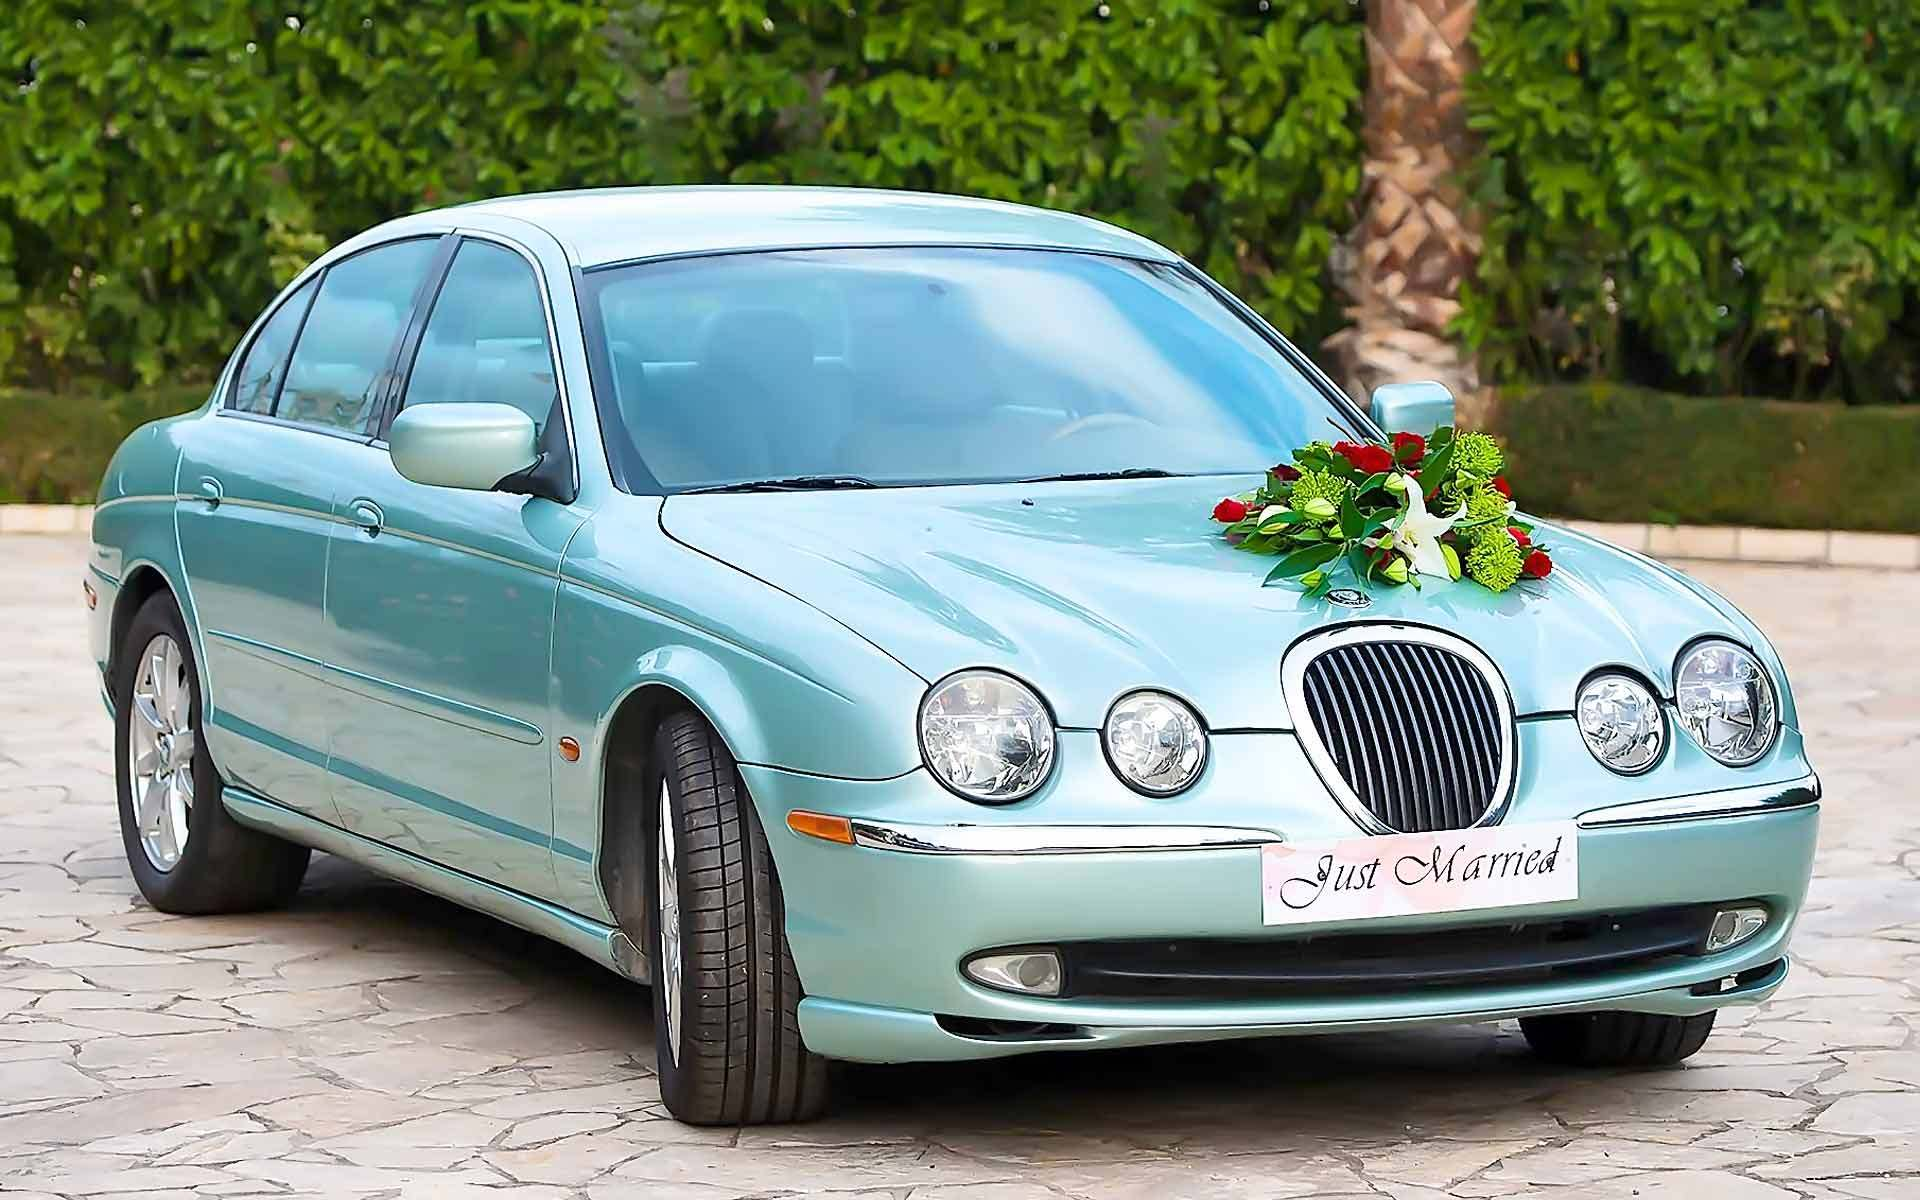 A-Classic-Wedding-Cars-Is-This-S-Type-Jaguar-by-Diamond-Events